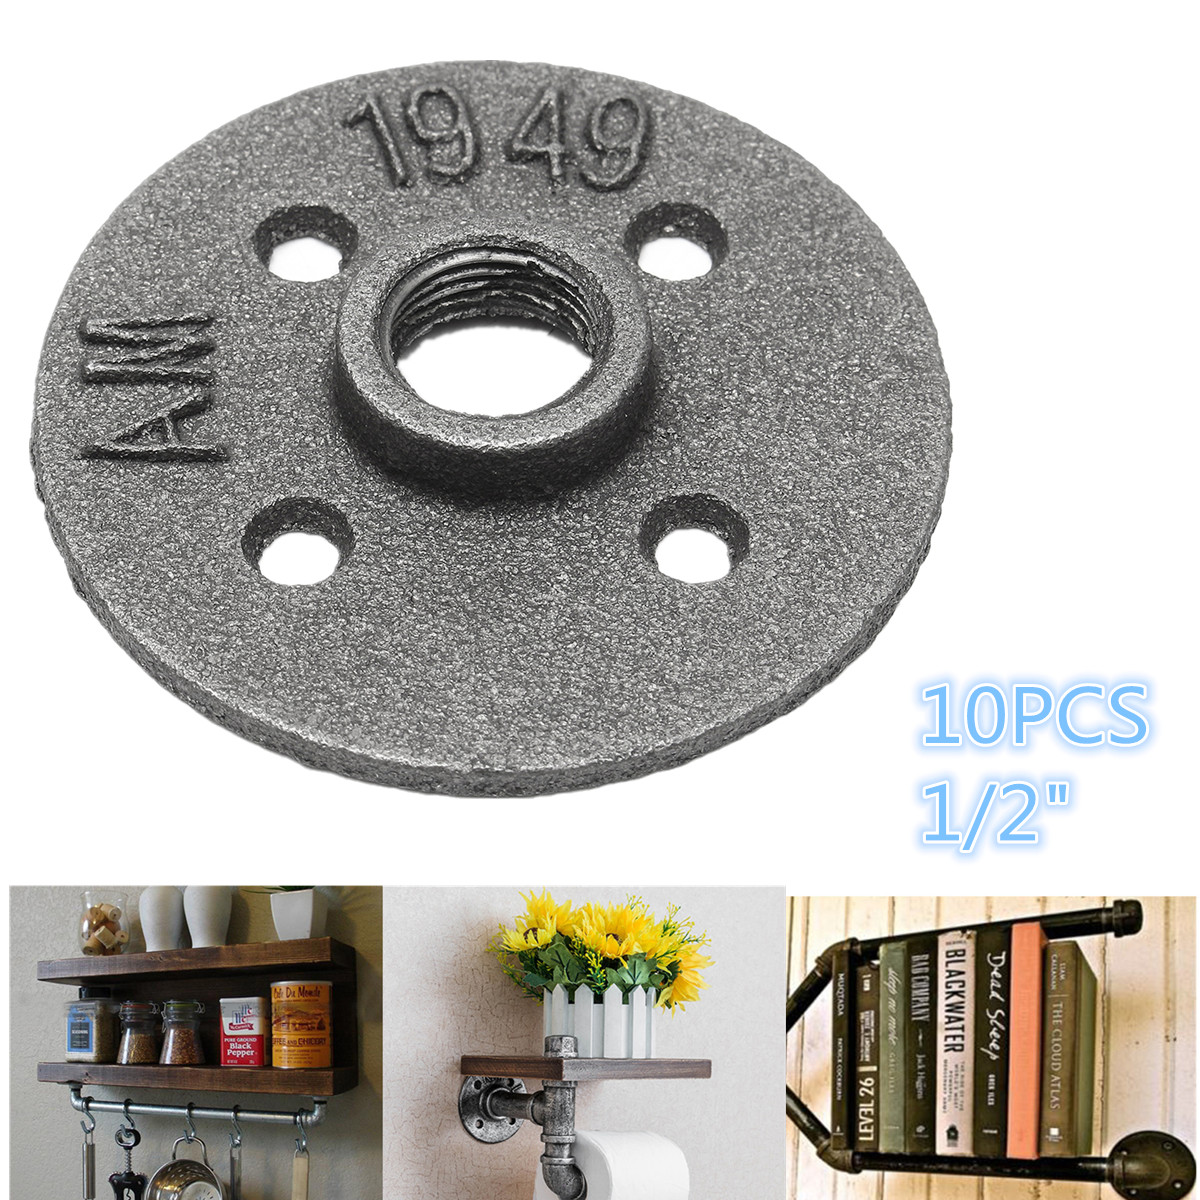 10pcs/lot For 1/2 Pipe DN20 Iron Floor Flange Seat Classic Casting Iron Flange High Quality Pipe Fittings Wall Mount ткань портьерная garden выс 290см сиреневый